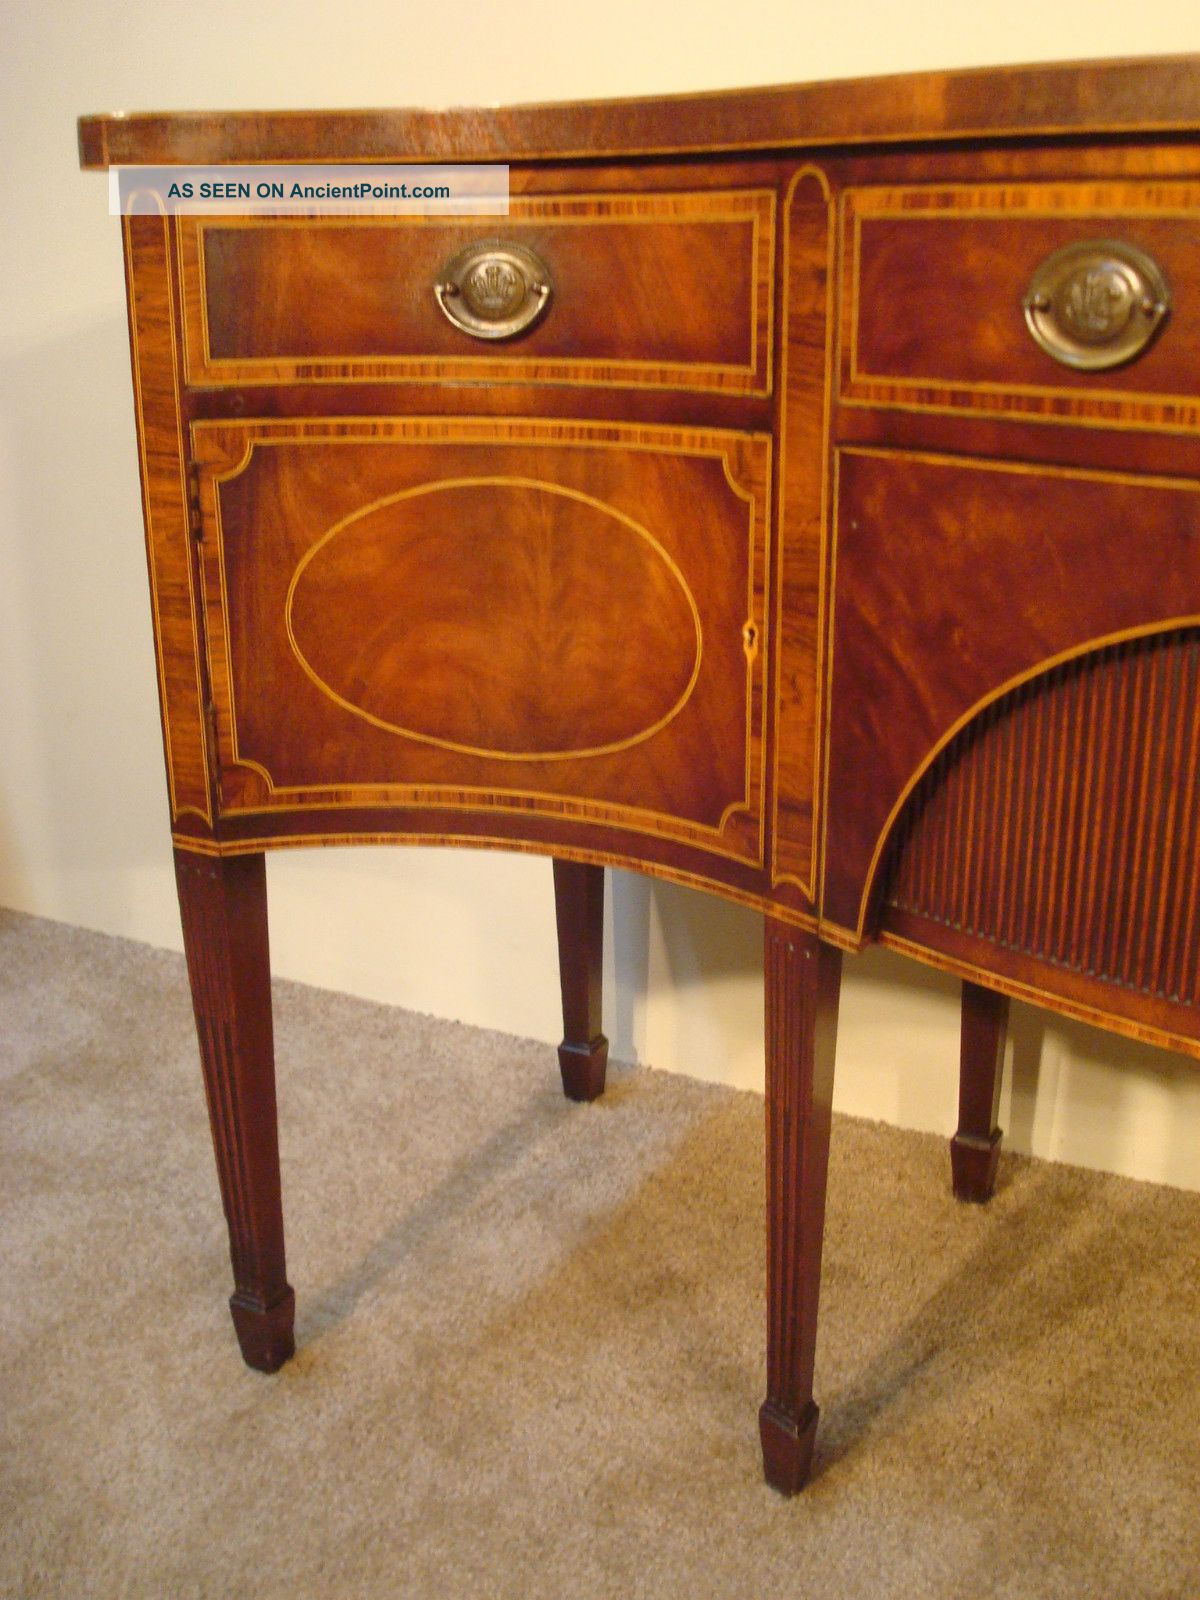 Antique Baker Furniture Company Inlaid Mahogany 8 - Leg Hepplewhite  Sideboard - Antique Baker Furniture Company Inlaid Mahogany 8 - Leg Hepplewhite